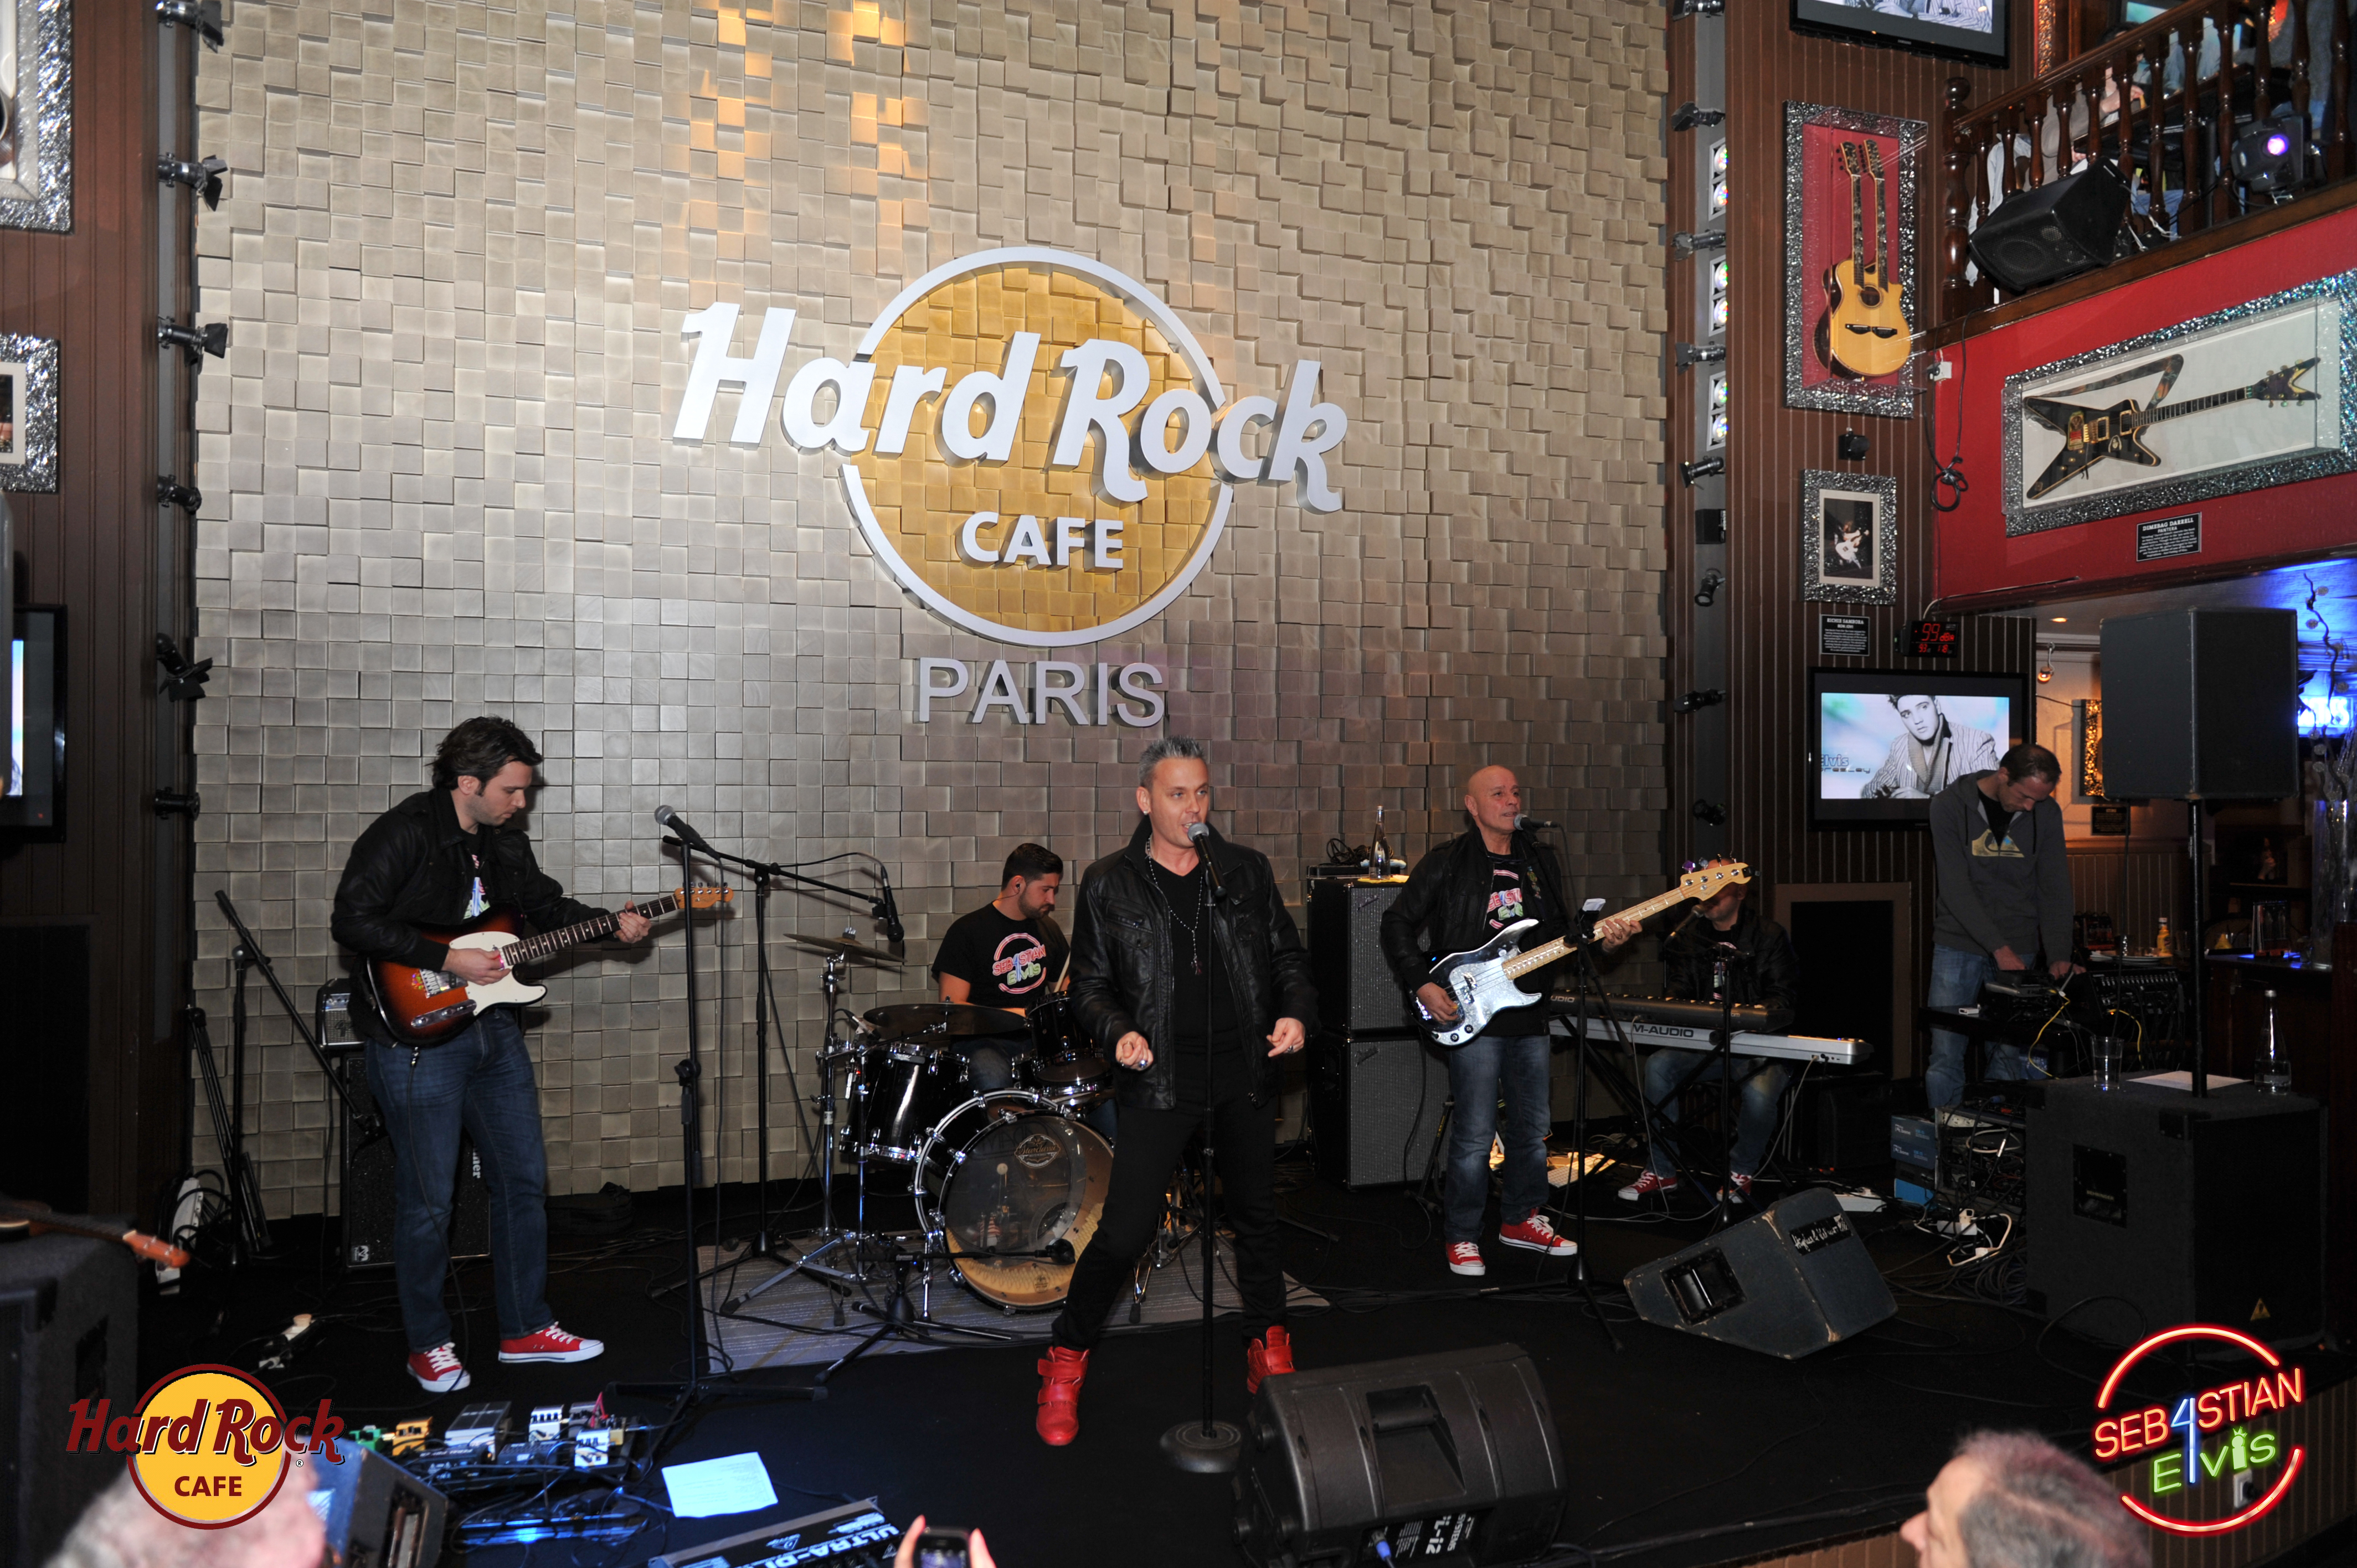 hard-rock-cafe-paris-elvis-night-27 janvier-2016-sebastian-for-elvis-facebook-memorial-show-0007